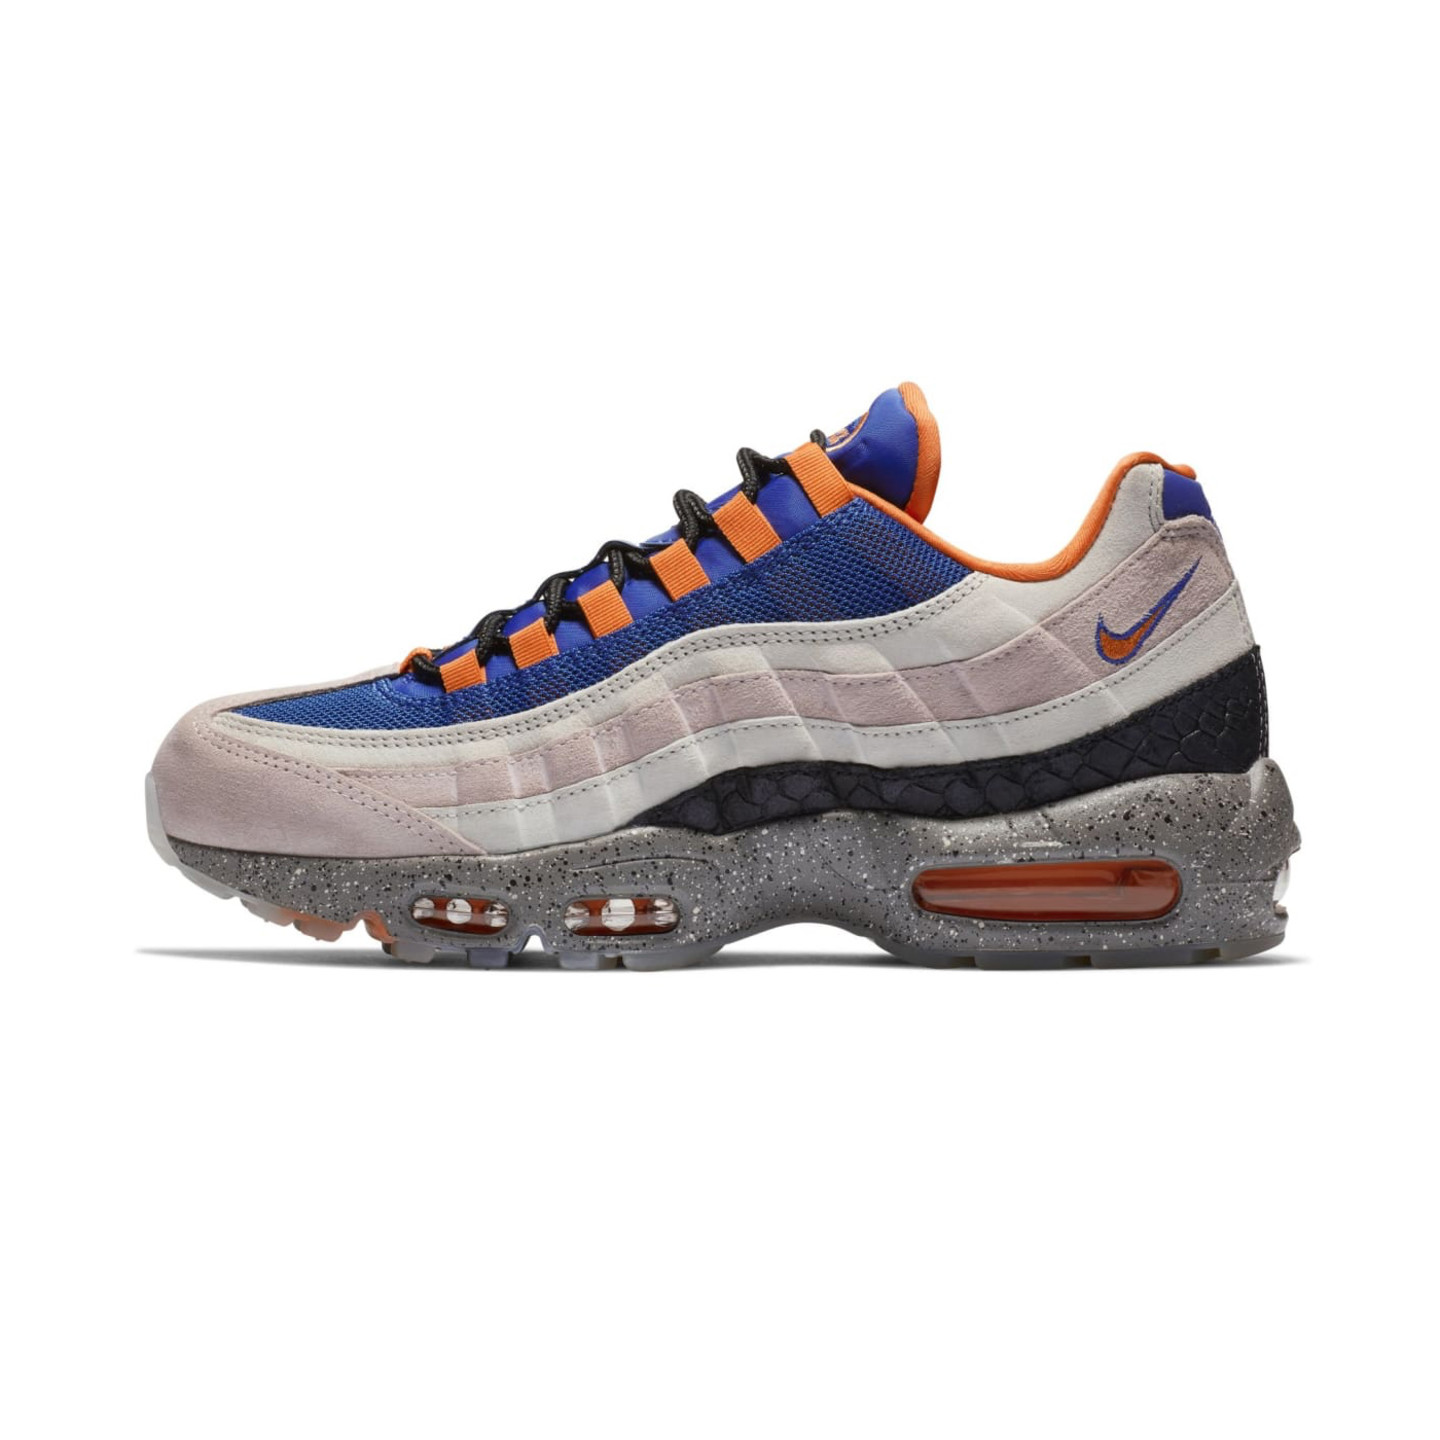 Nike Air Max 95 'King Of The Mountain' Champagne / Safety Orange / Sport Royal AV7014-600